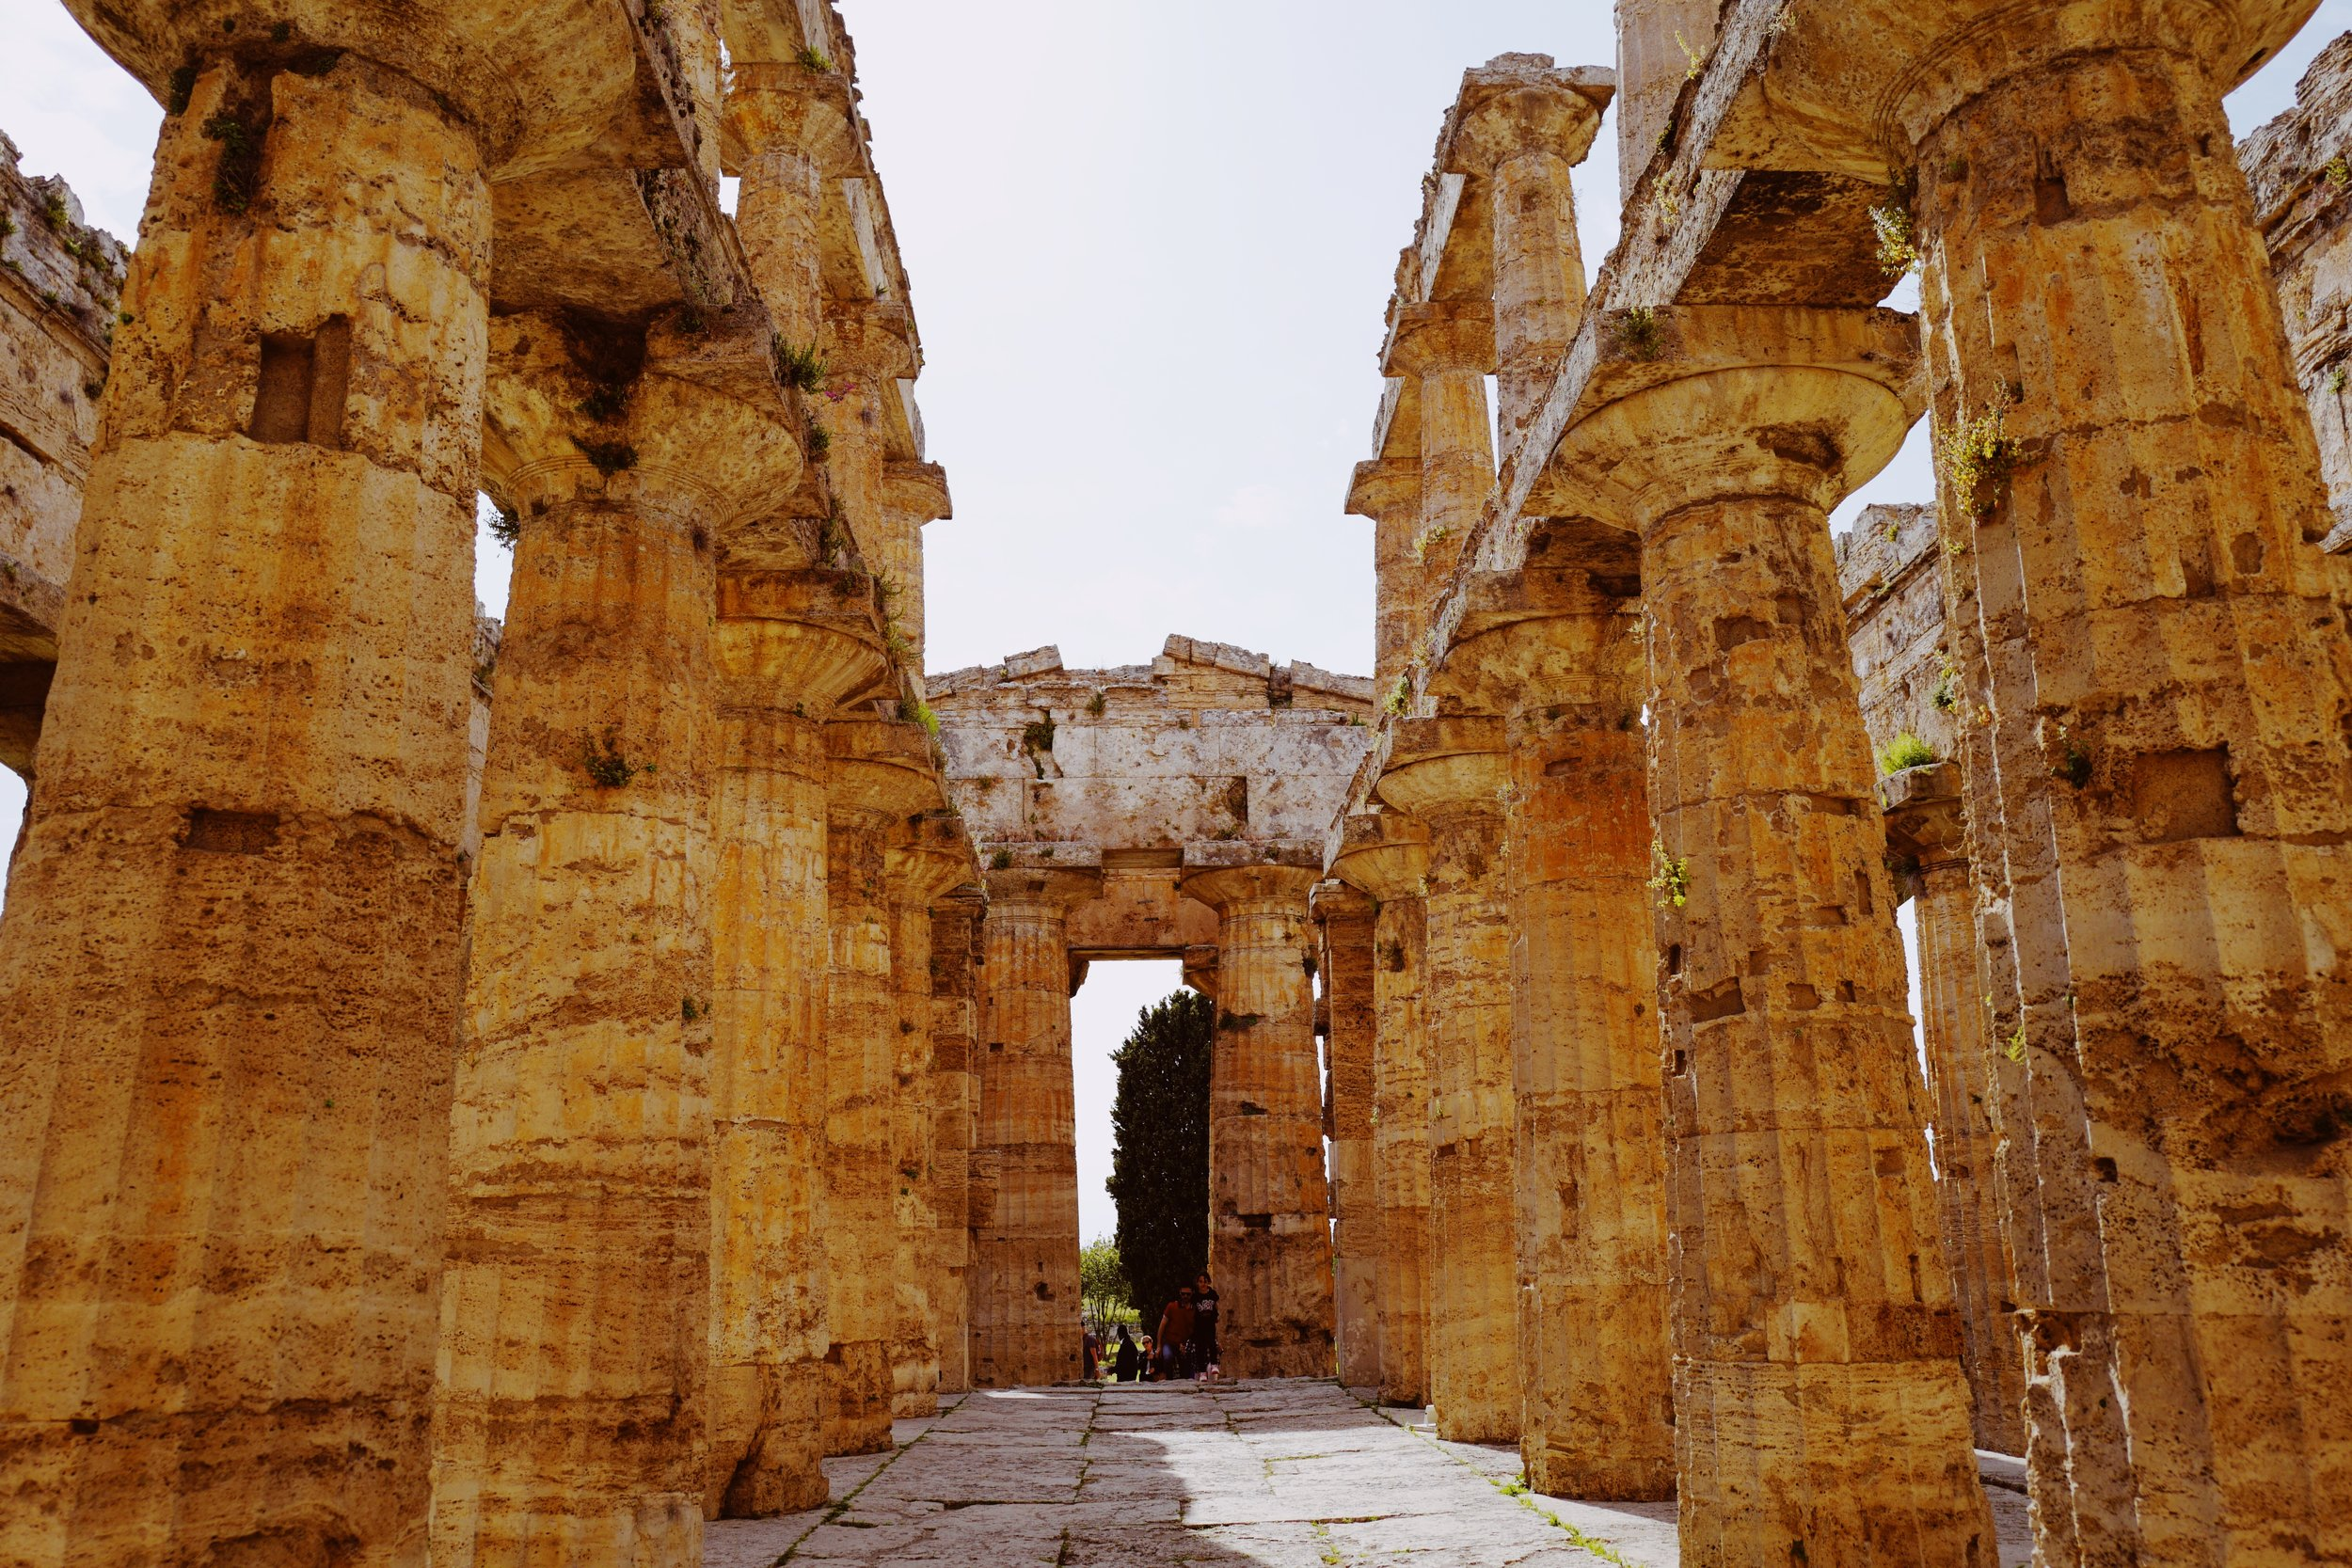 Walking around inside the Temple of Hera II